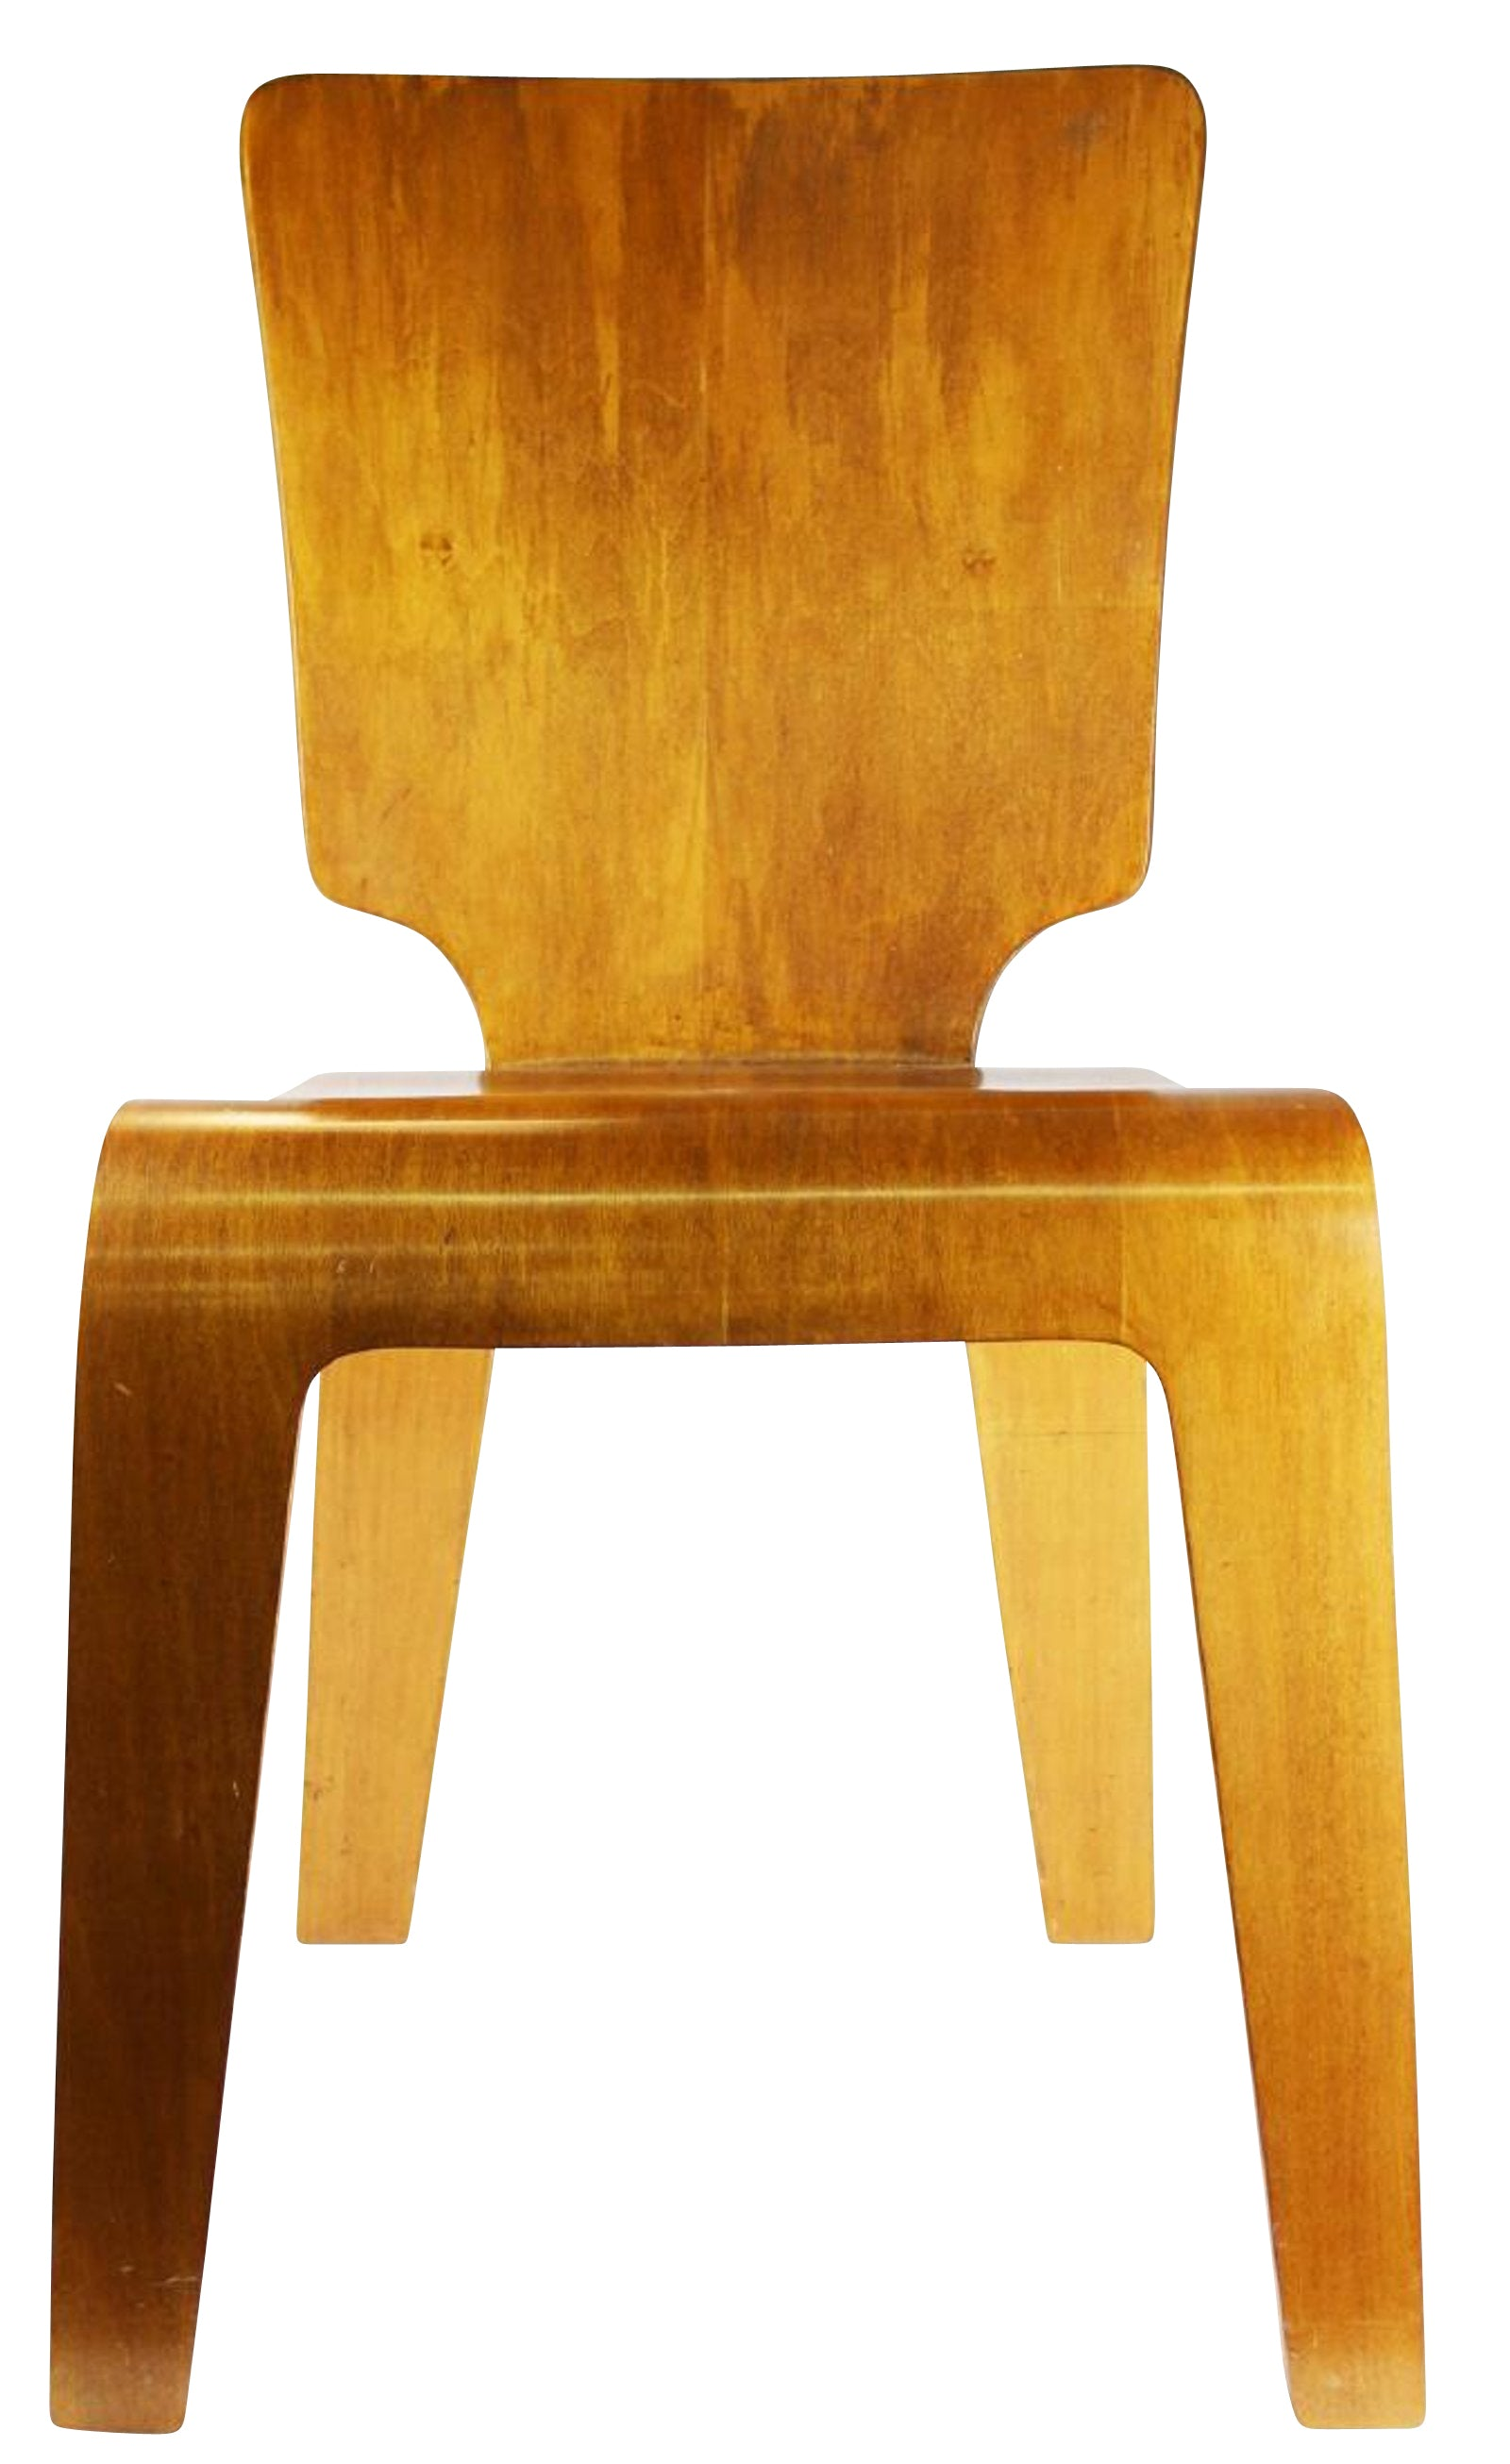 Herbert Von Thaden Bent Plywood Chair   Model 102 1